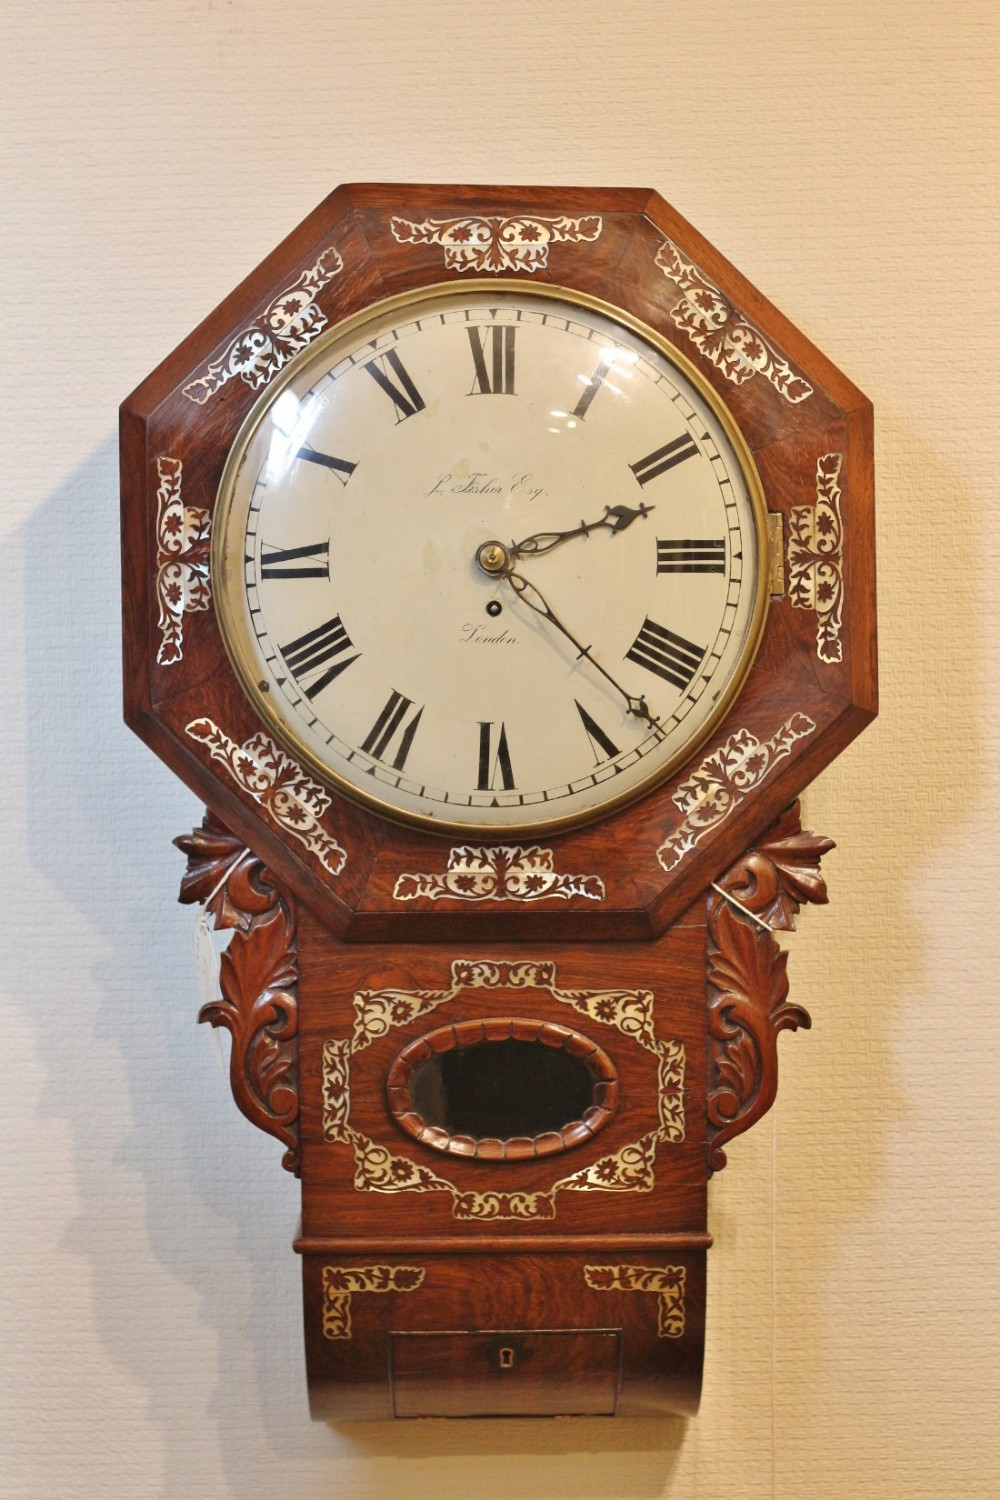 19th century inlaid rosewood fusee london wall clock 'j fisher esq'